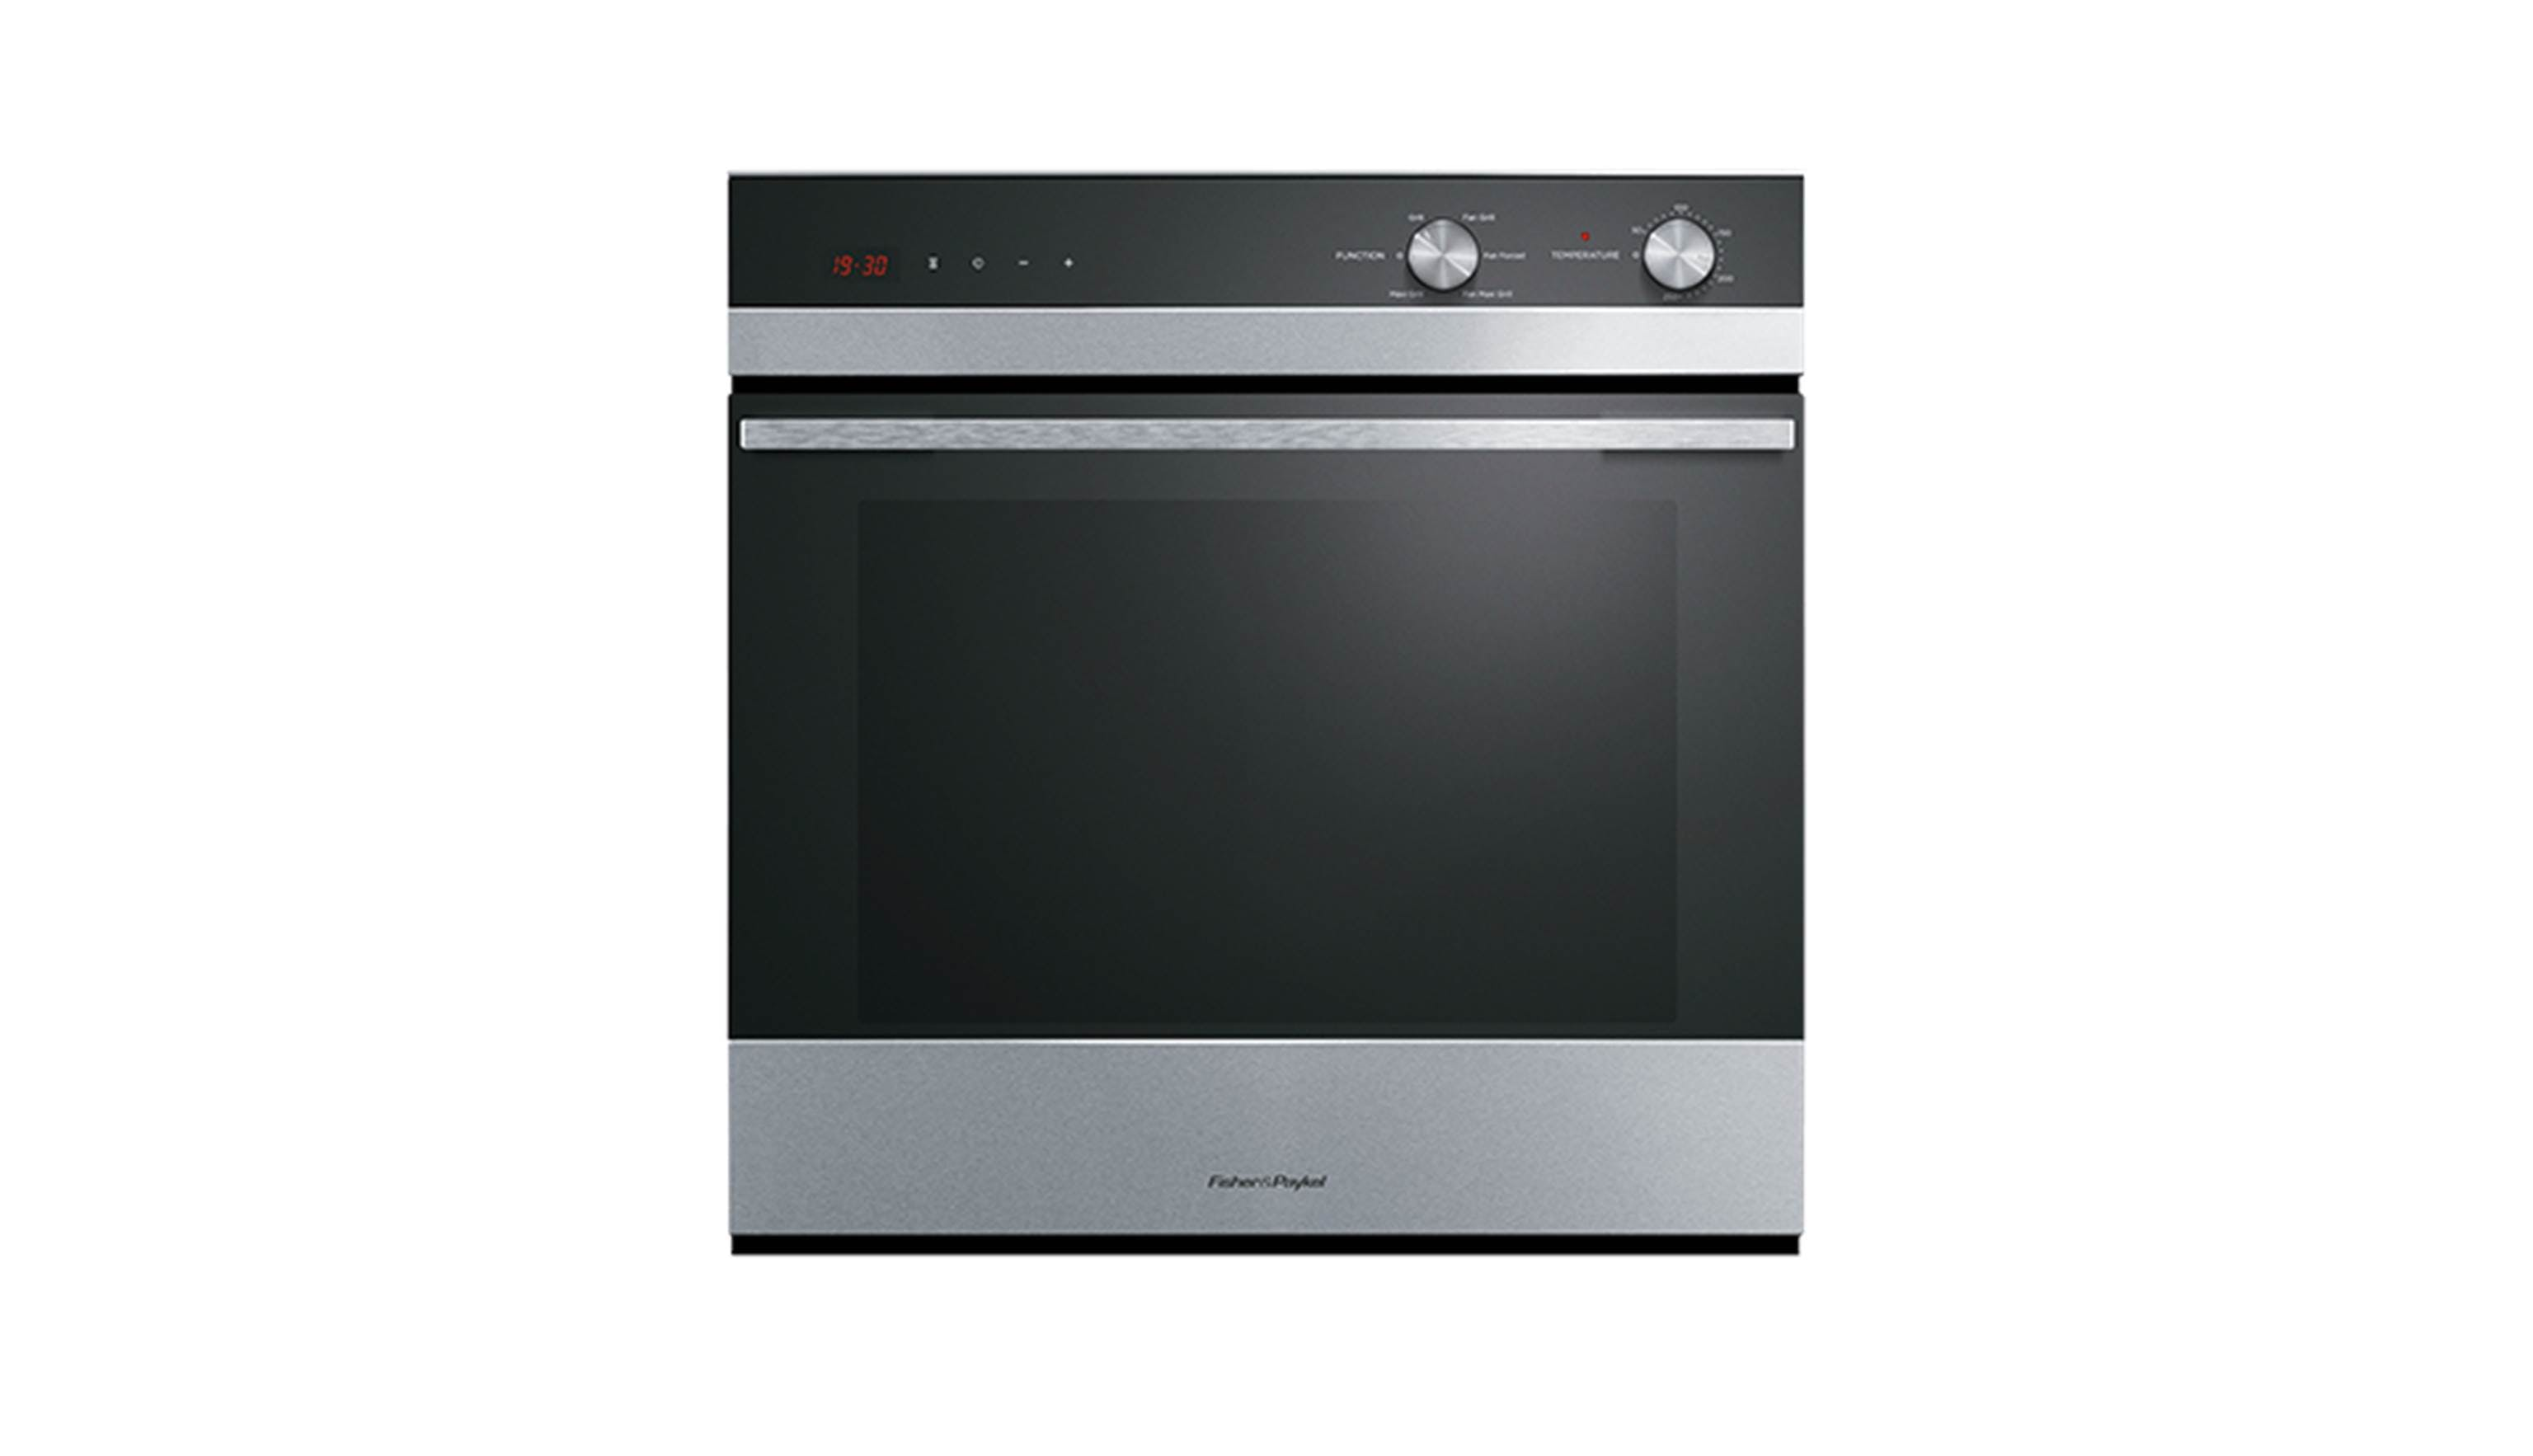 Fisher Paykel Ob60sc5cex1 60cm Built In Stainless Steel Oven